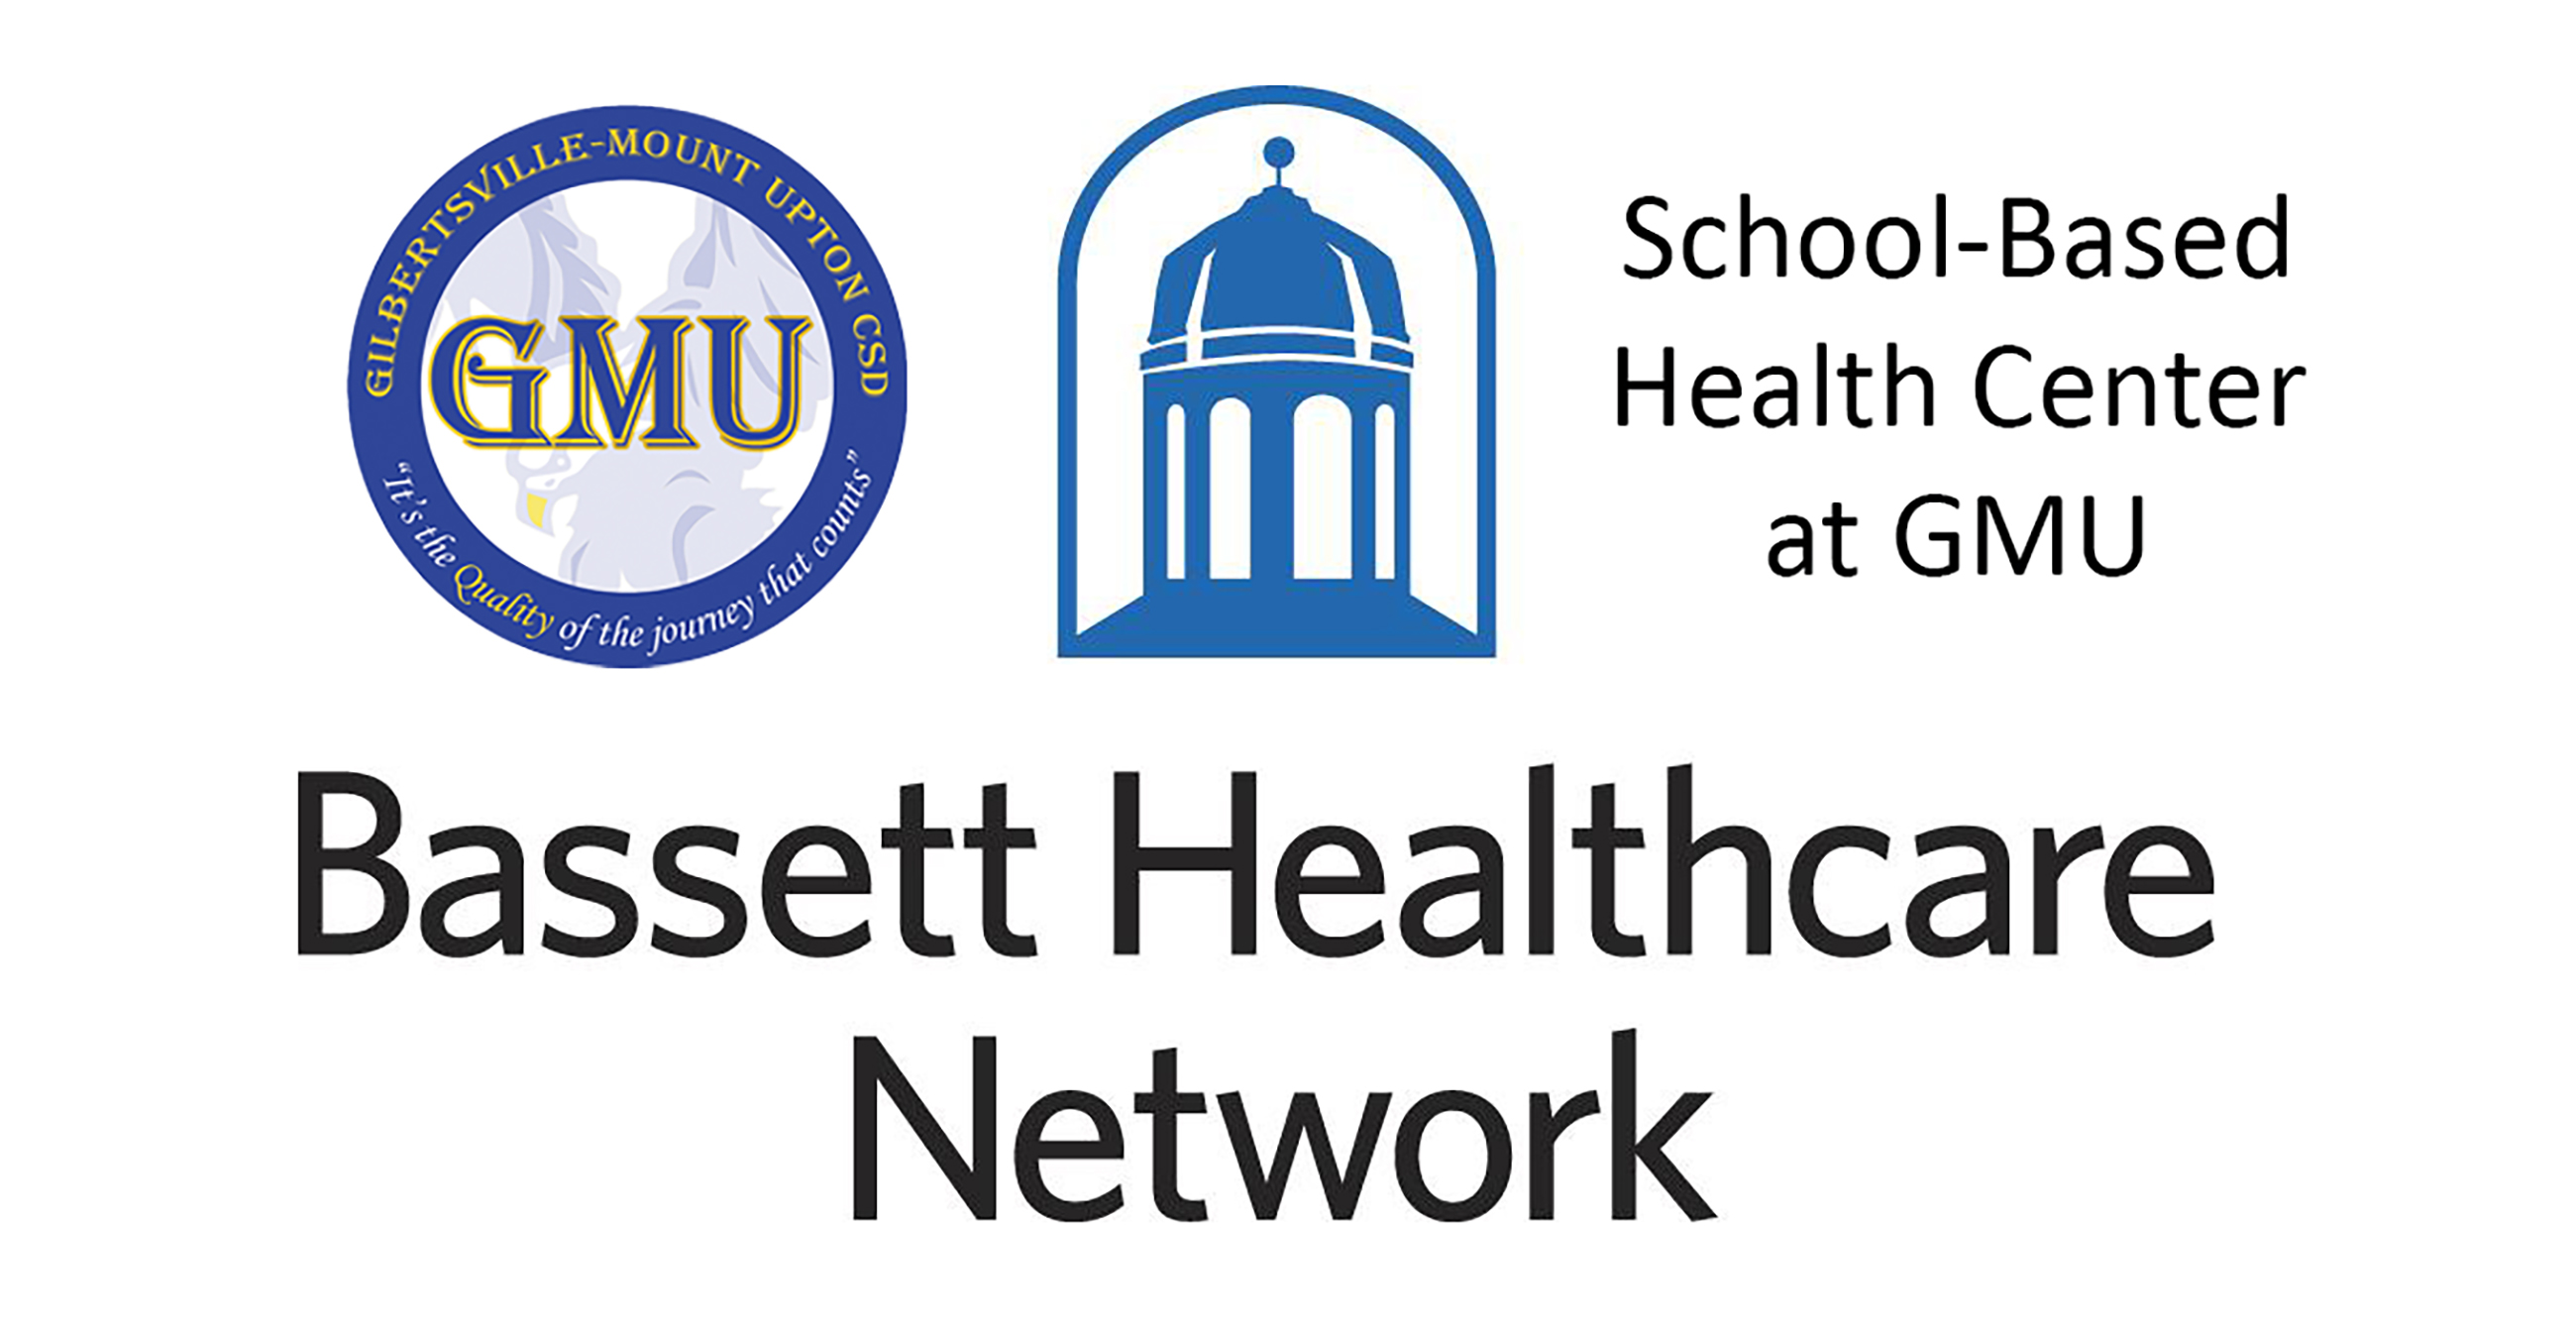 Bassett Healthcare Network and GMU logos with School-Based Health Center at GMU text